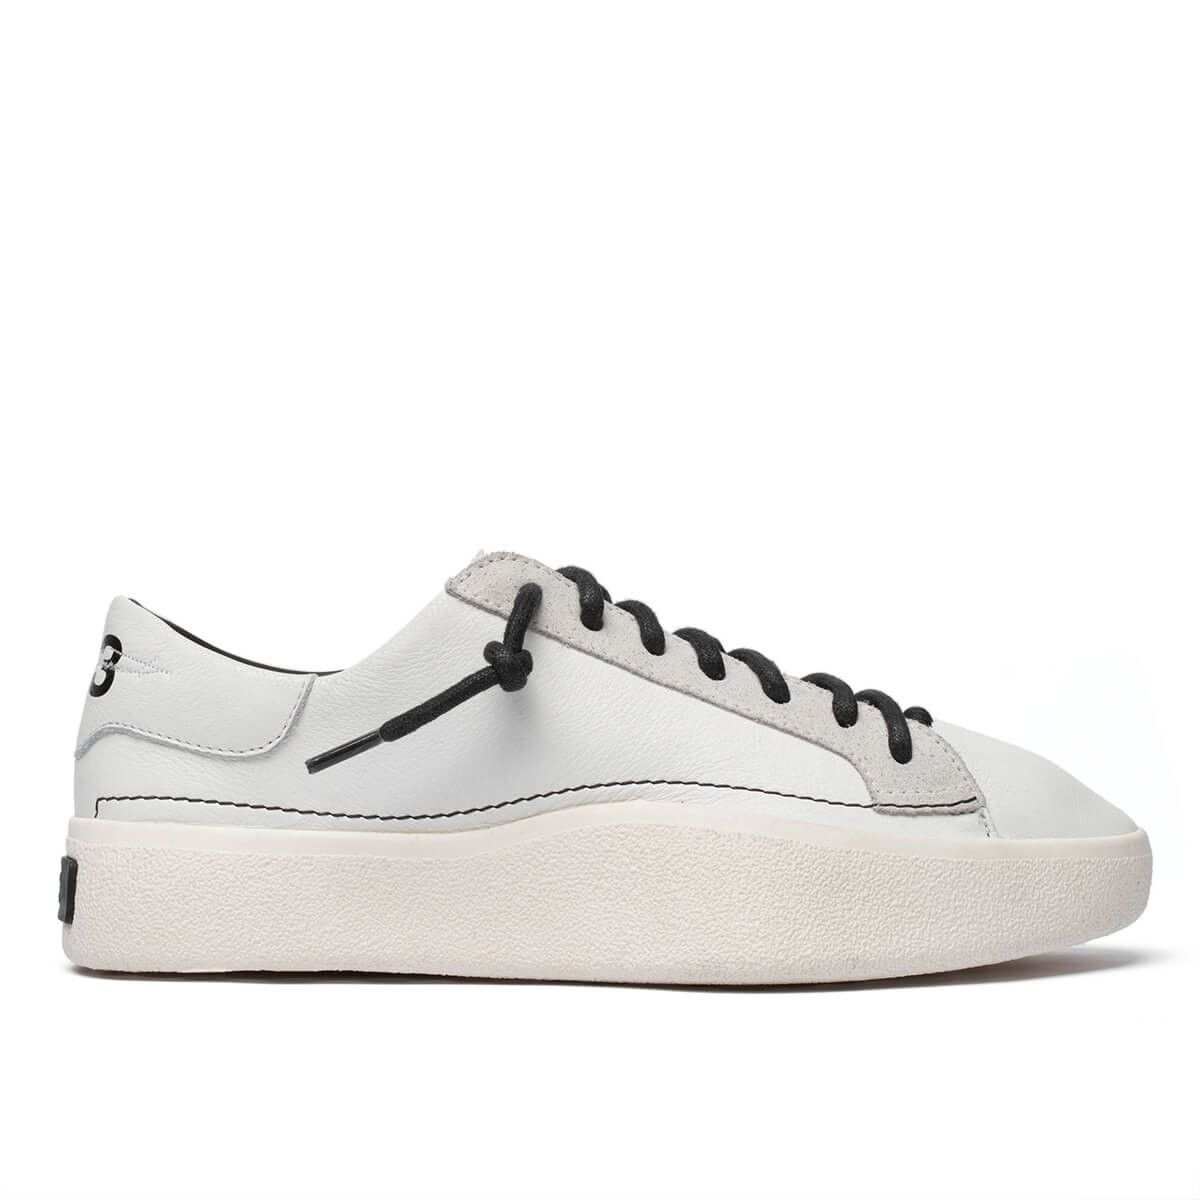 1f5b8224c Tangutsu Lace sneakers from the Pre-Fall 2018 Y-3 by Yohji Yamamoto  collection in white